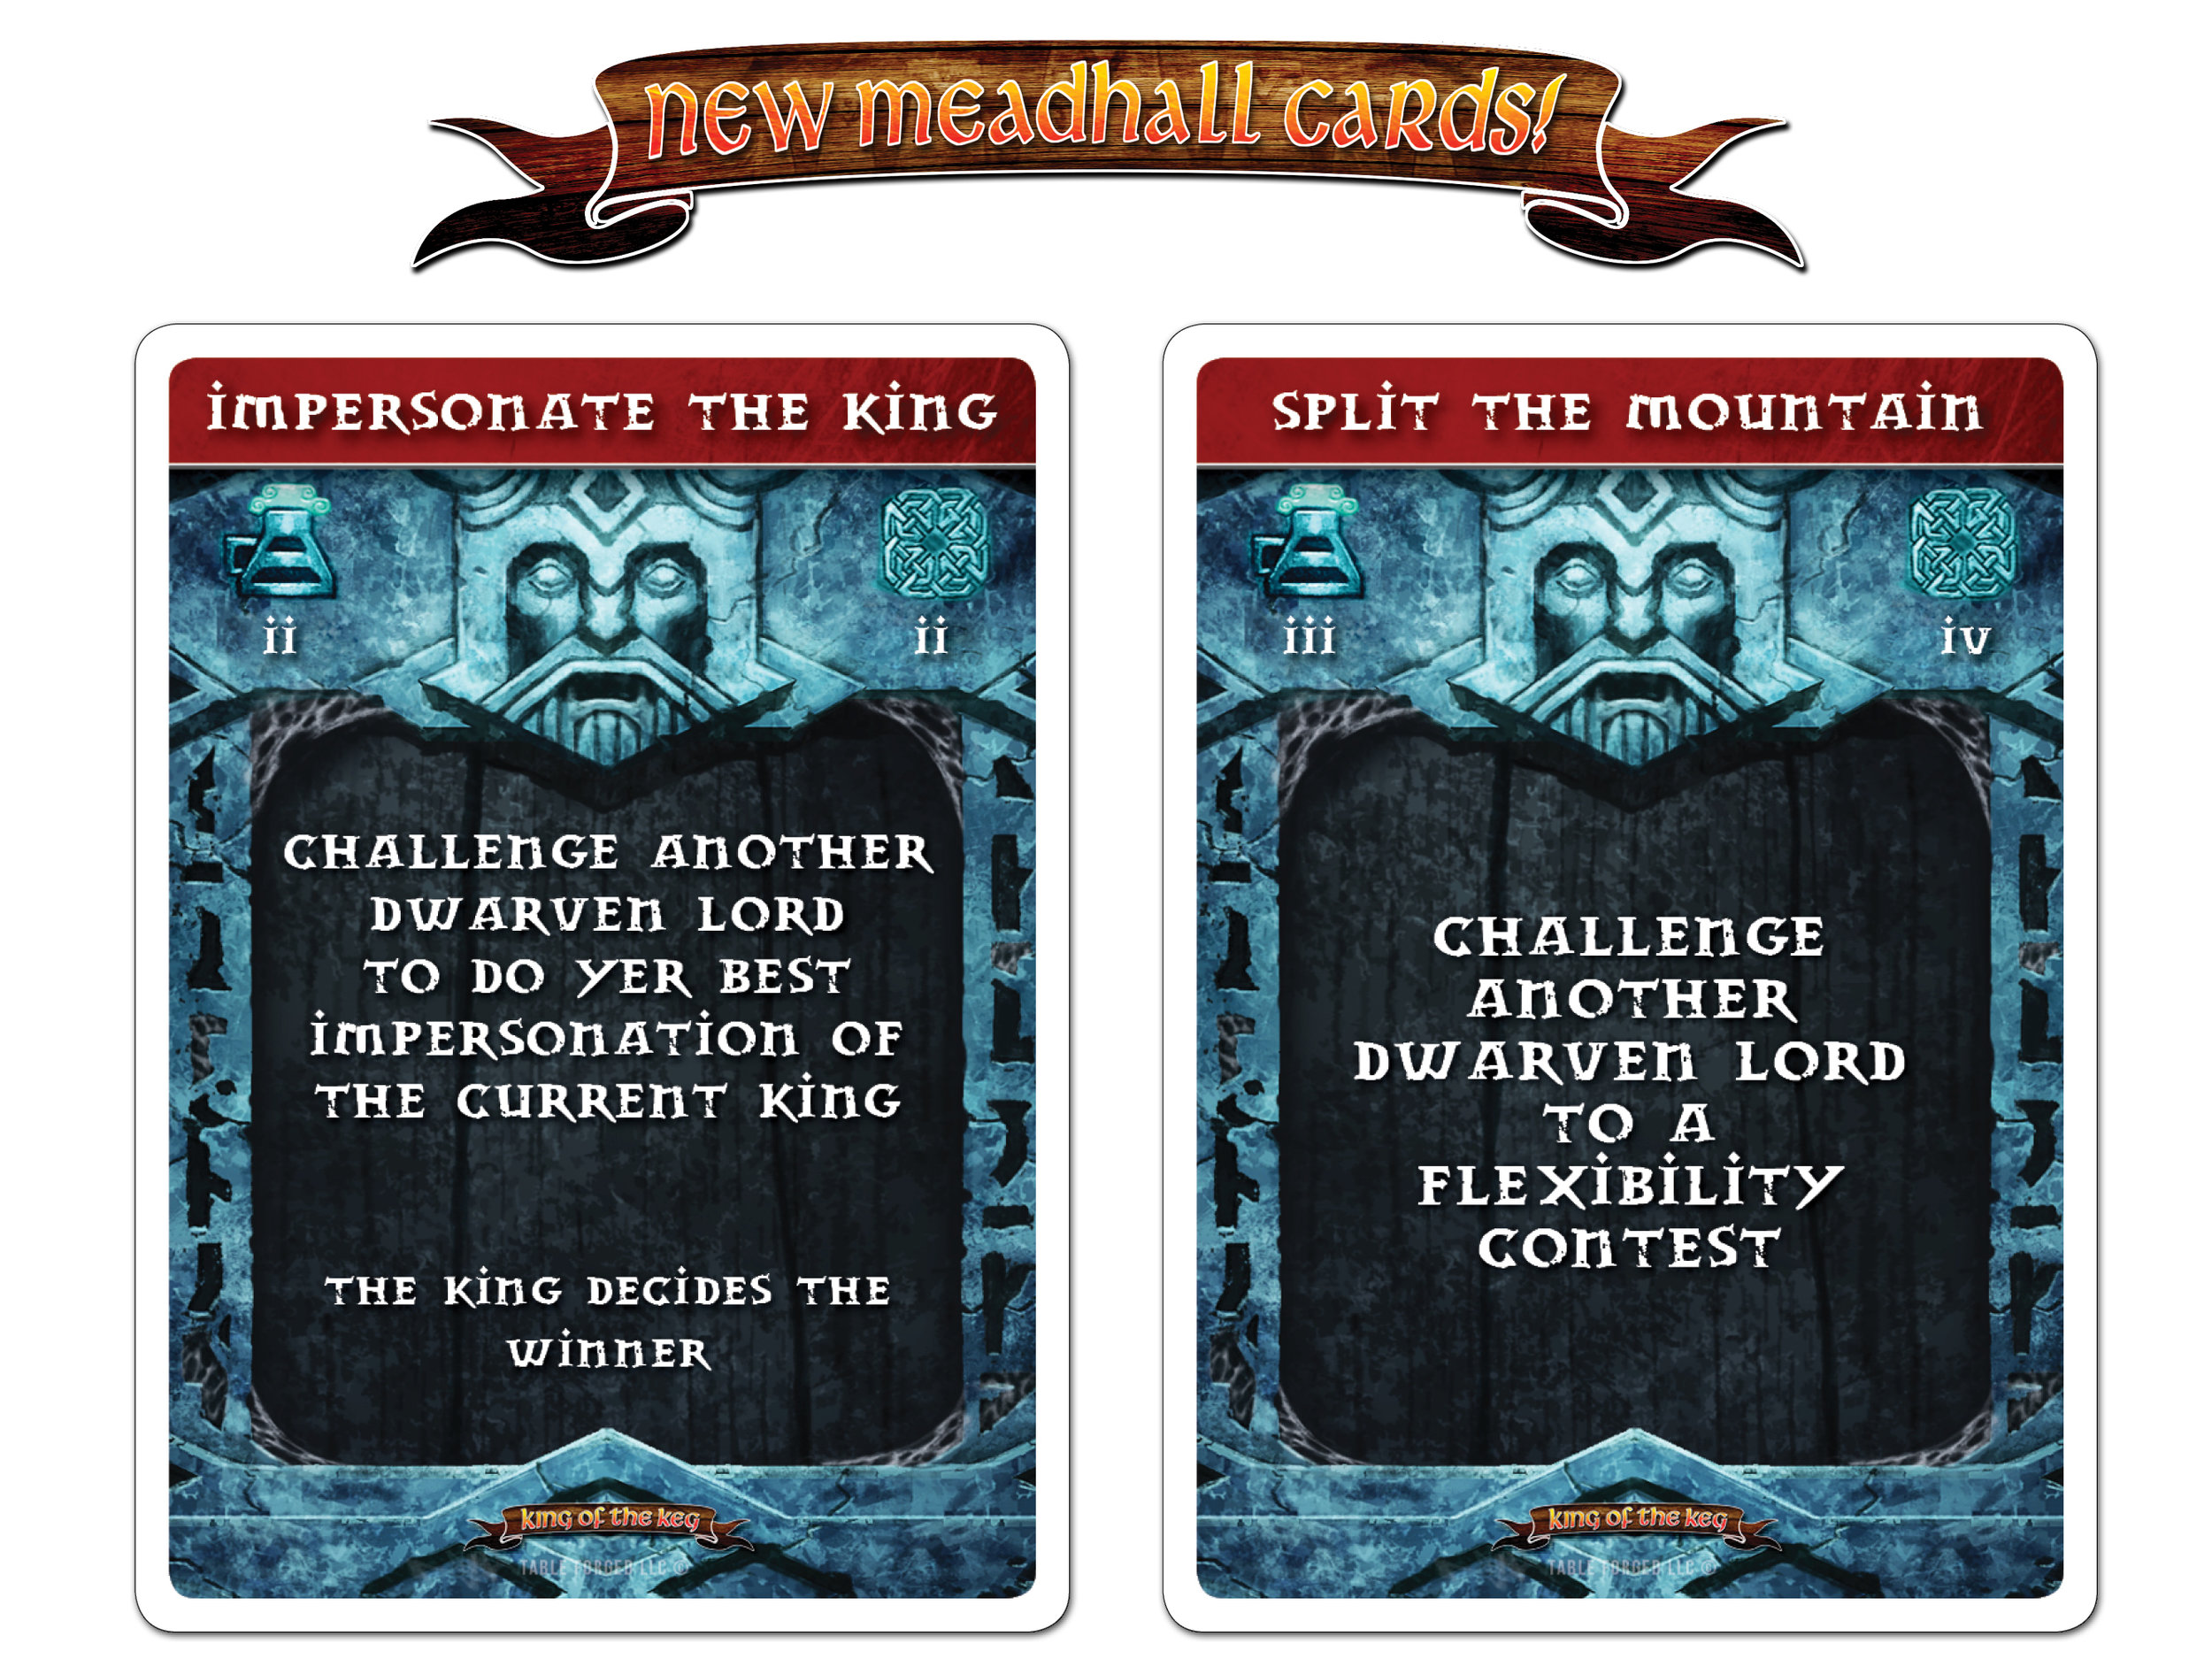 new meadhall cards.jpg